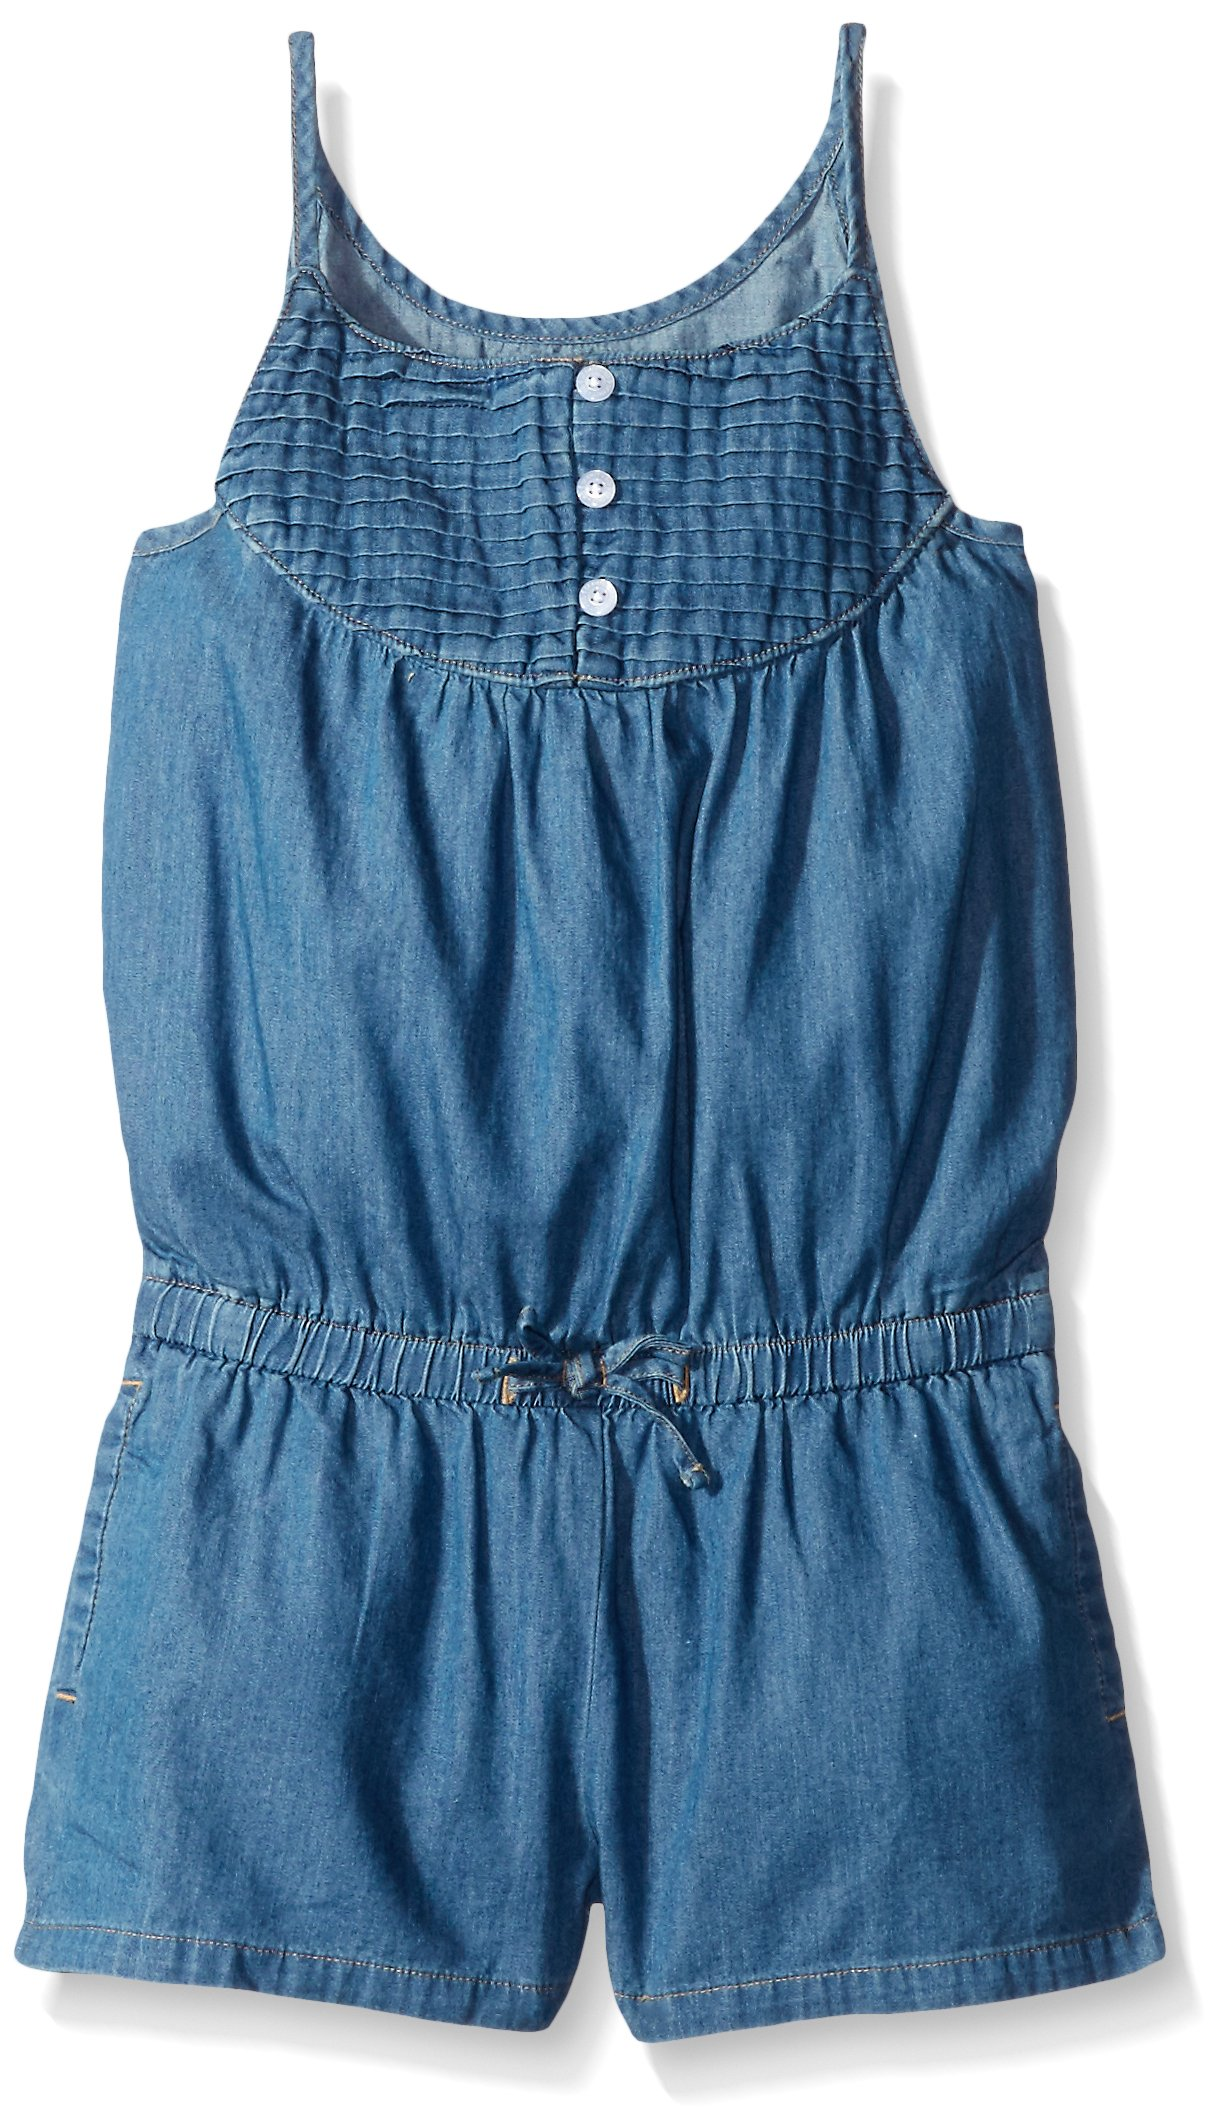 Scout + Ro Big Girls' Pintuck Denim Romper, Medium Wash, 12